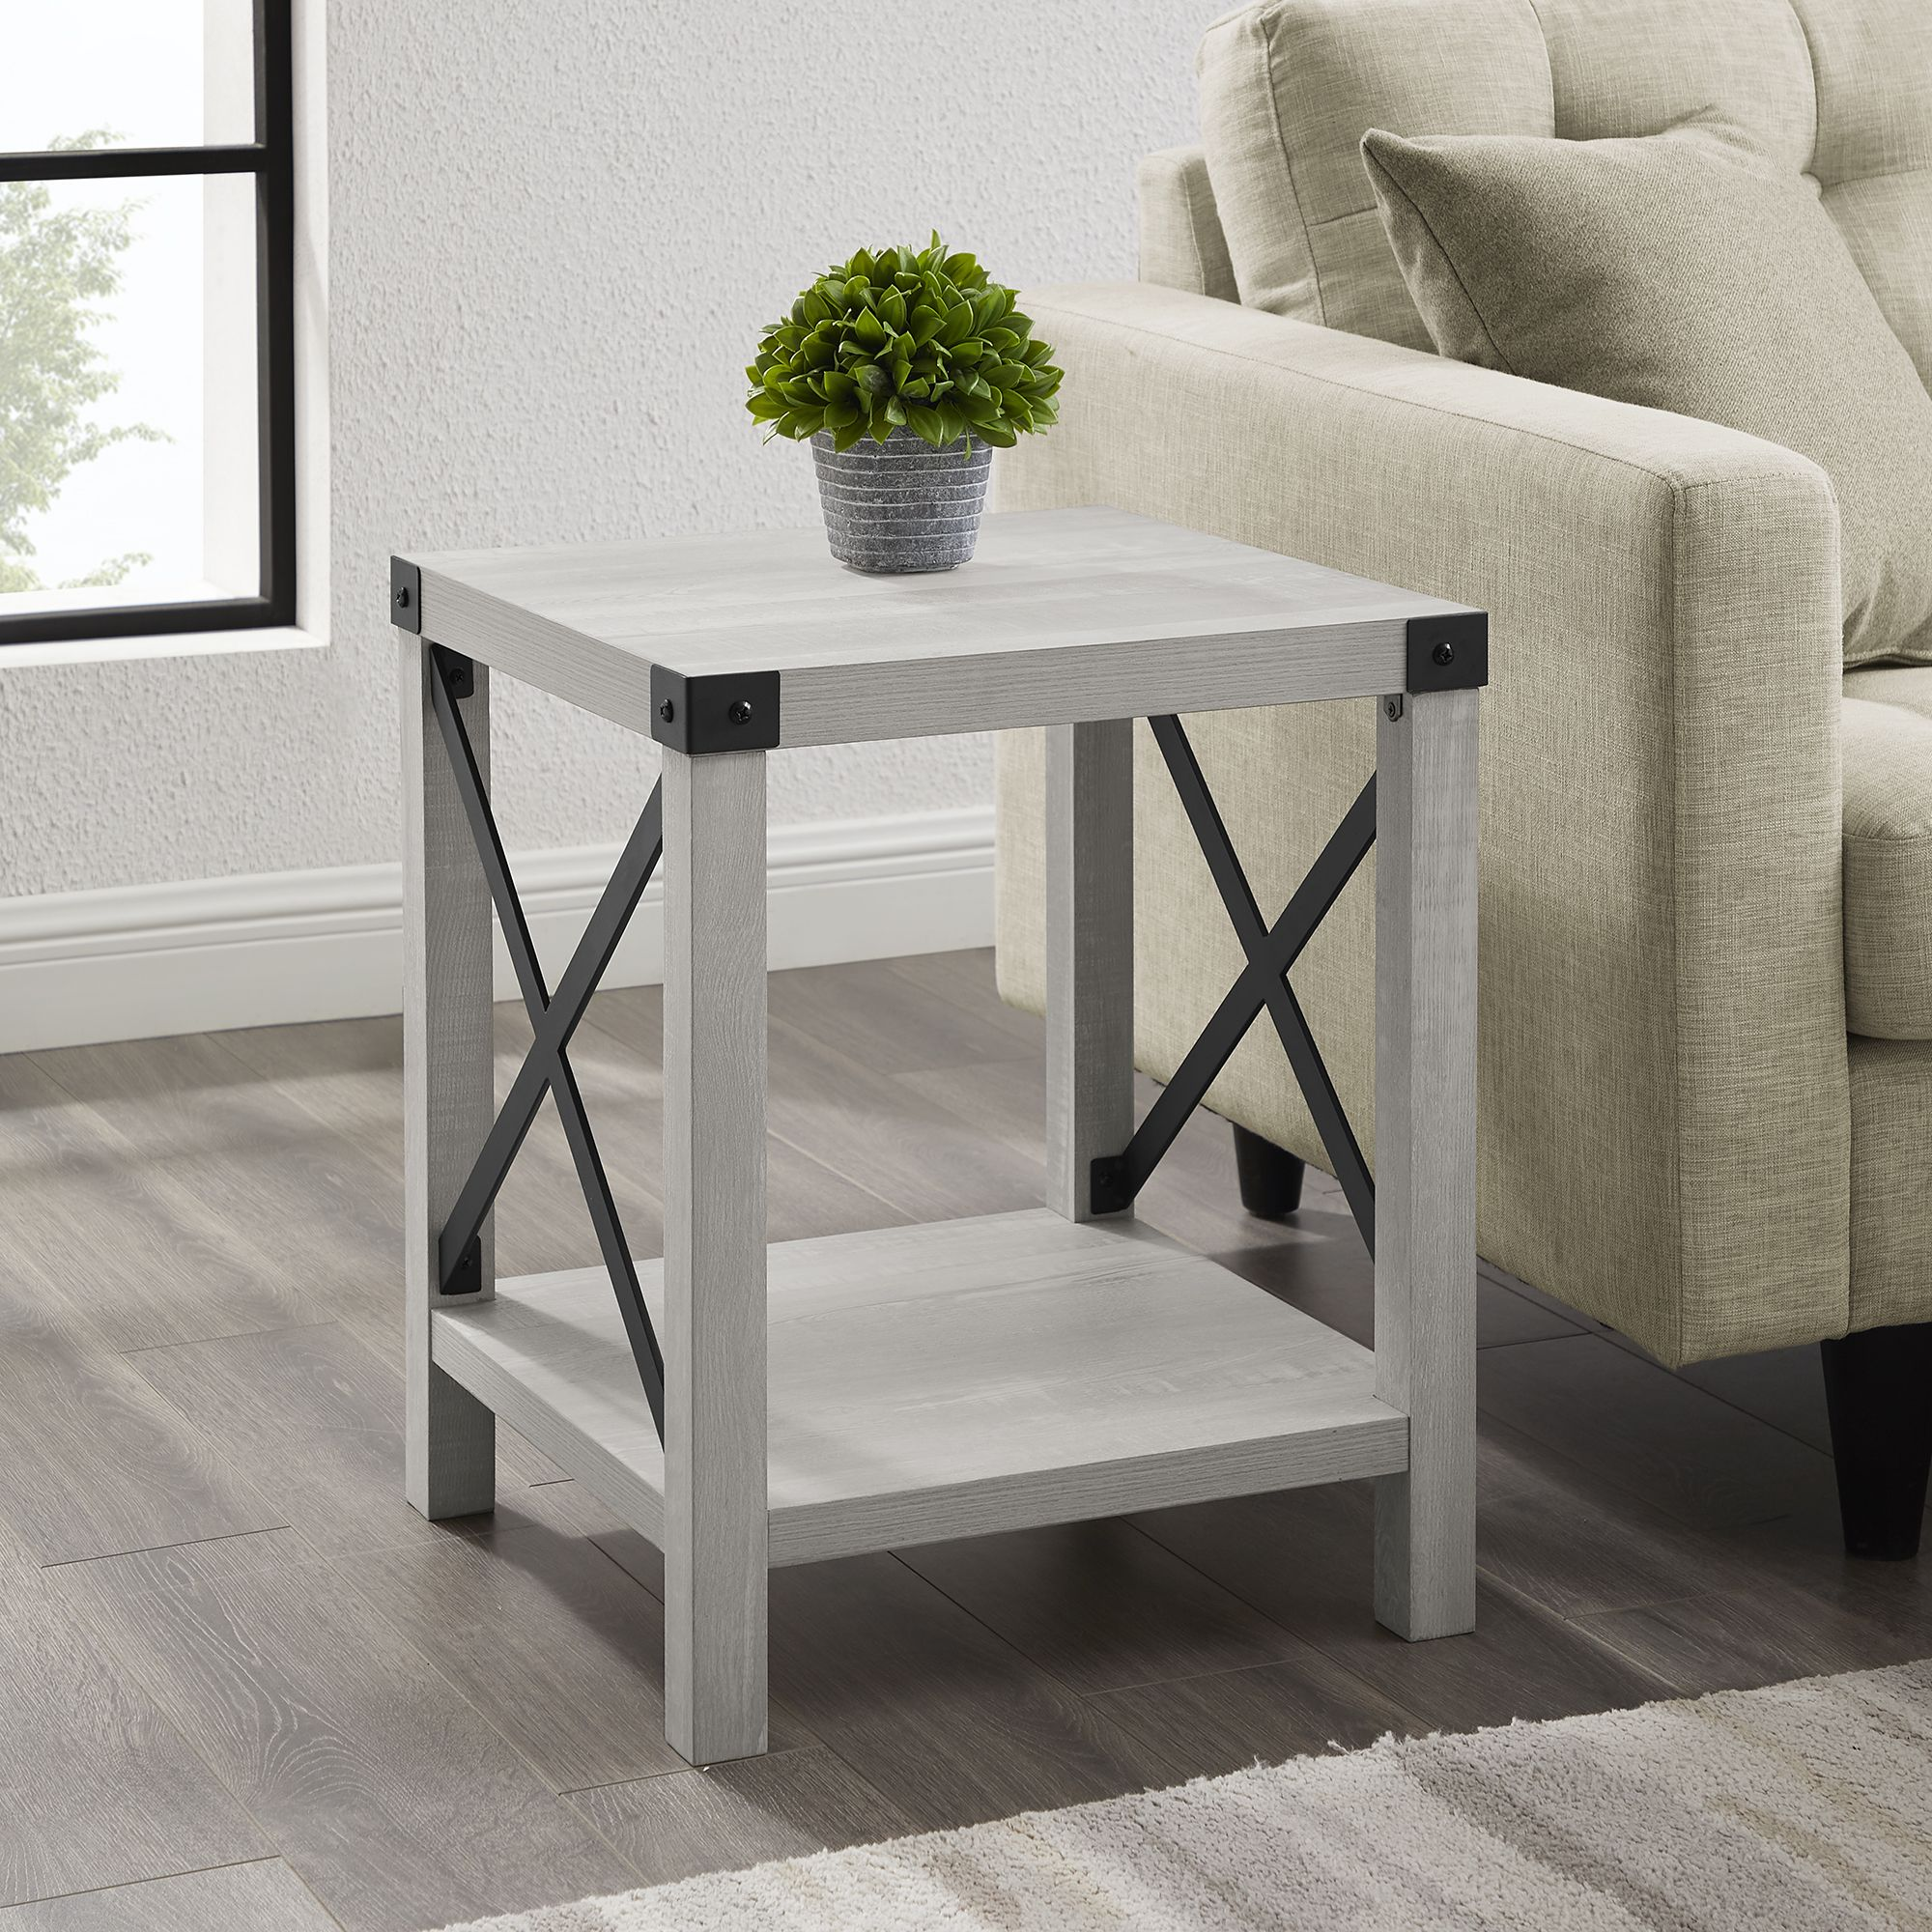 Free 2 Day Shipping Buy Magnolia Metal X Stone Grey End Table By Desert Fields At Walmart Com In 2021 End Tables Table Decor Living Room Living Room End Tables [ 2000 x 2000 Pixel ]